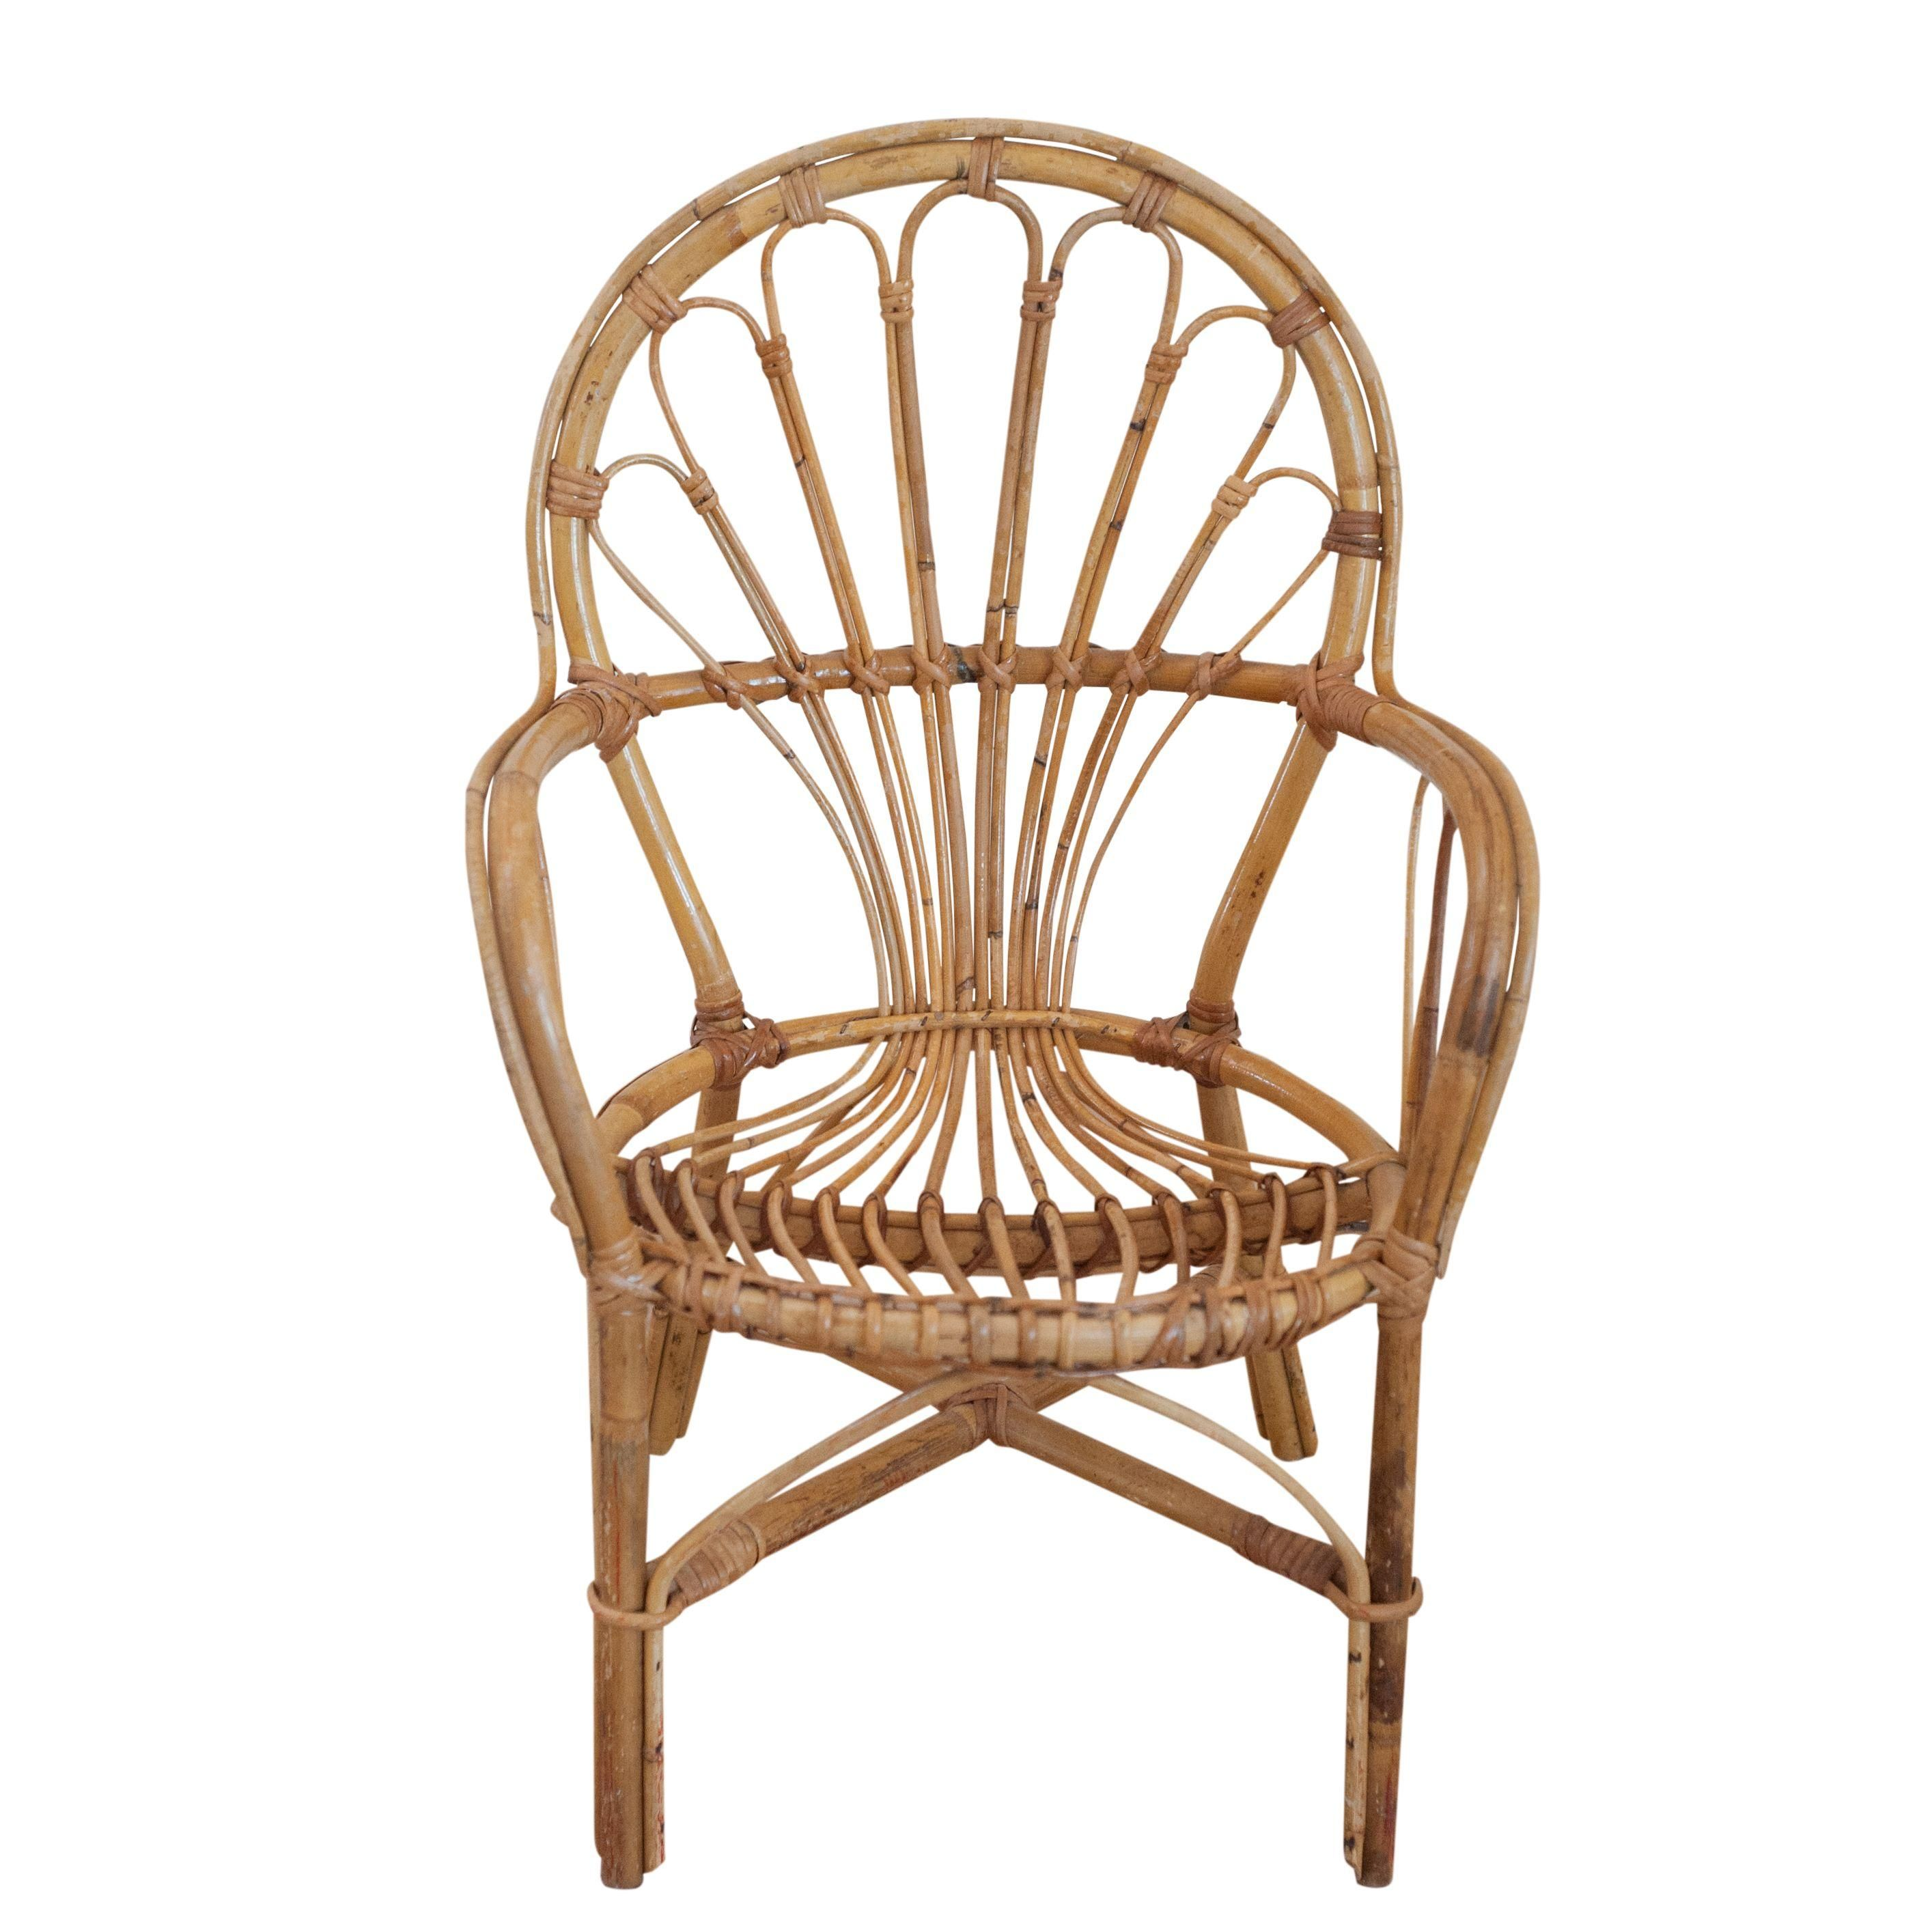 or italian style? i'm leaning dutch...Franco Albini Style Rattan Child's Chair on Chairish.com